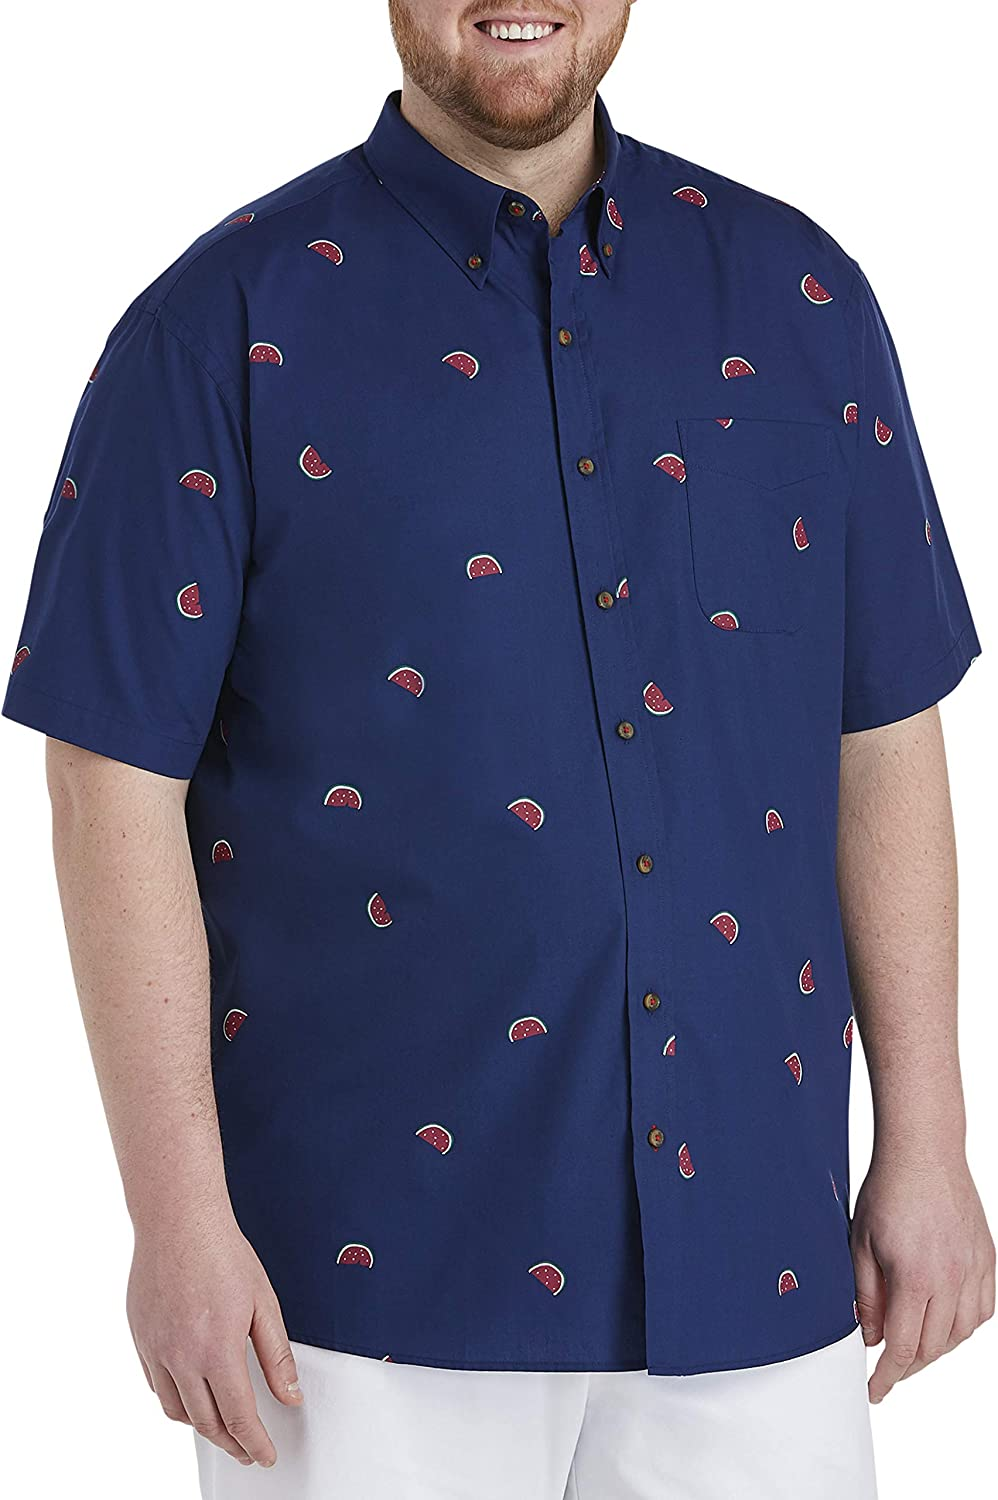 Harbor Bay by DXL Big and Tall Easy-Care Watermelon Sport Shirt, Navy